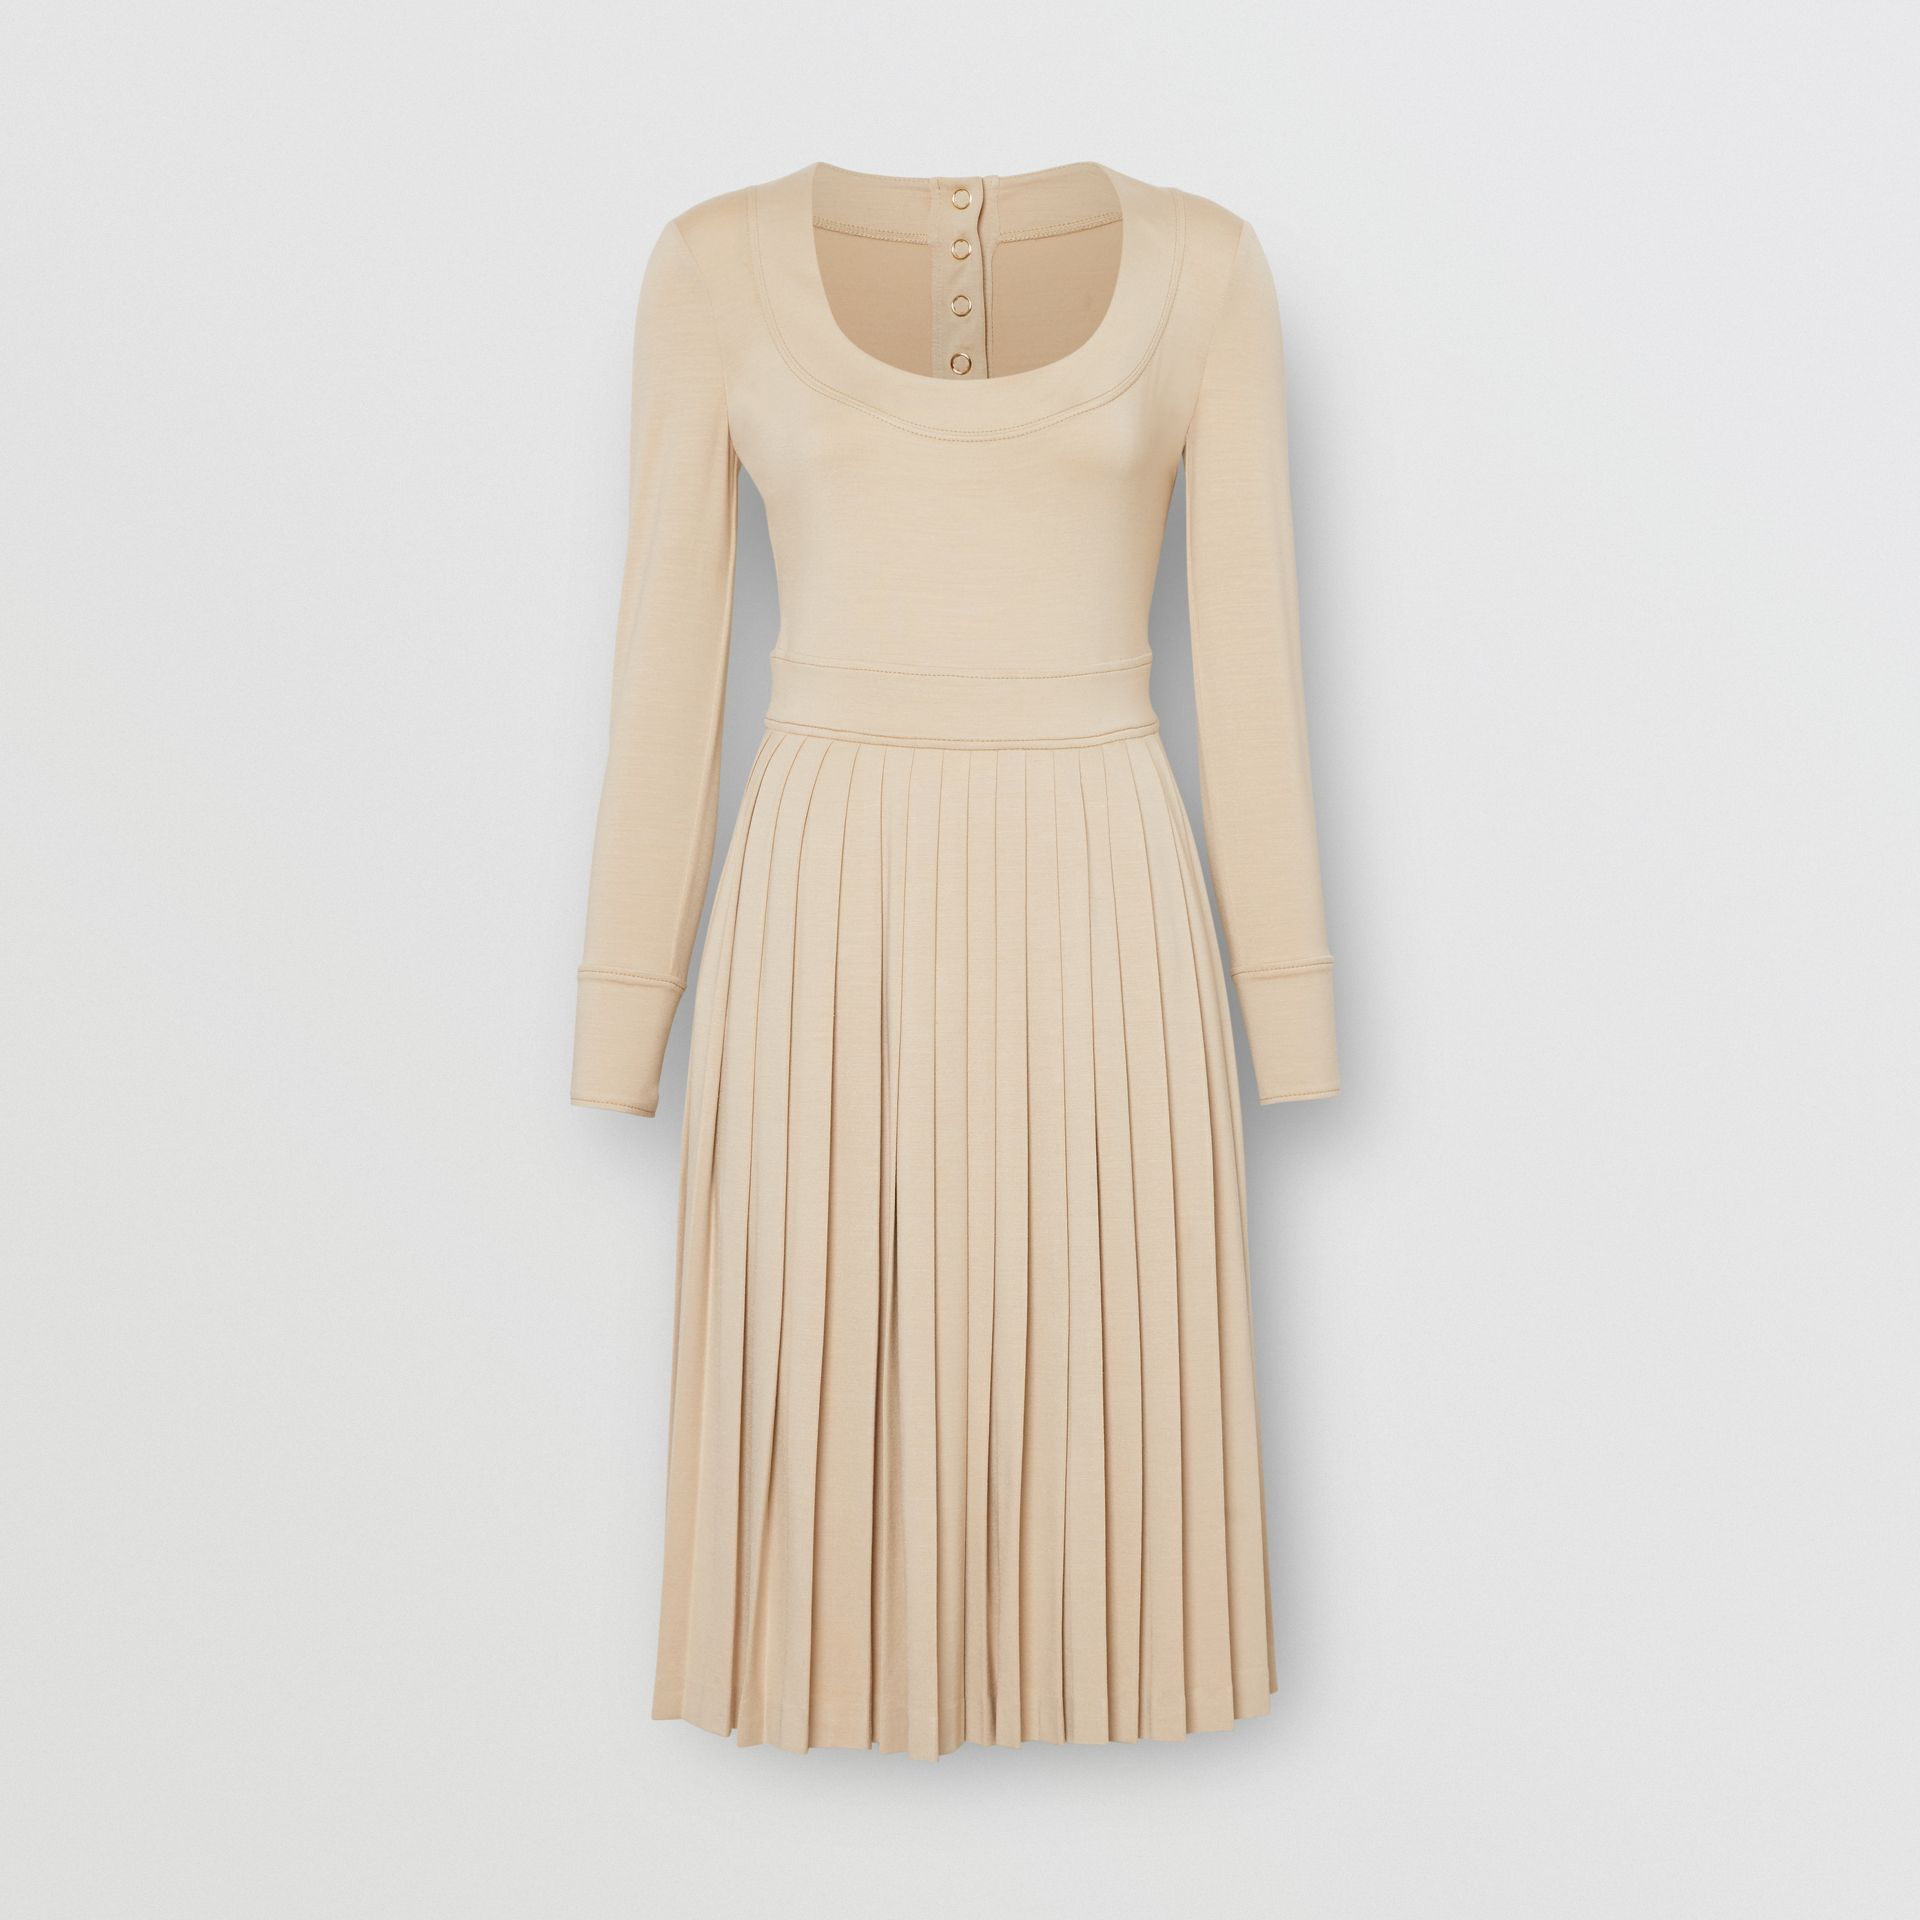 Long-sleeve Pleated Dress in Teddy Beige - Women | Burberry United States - gallery image 3